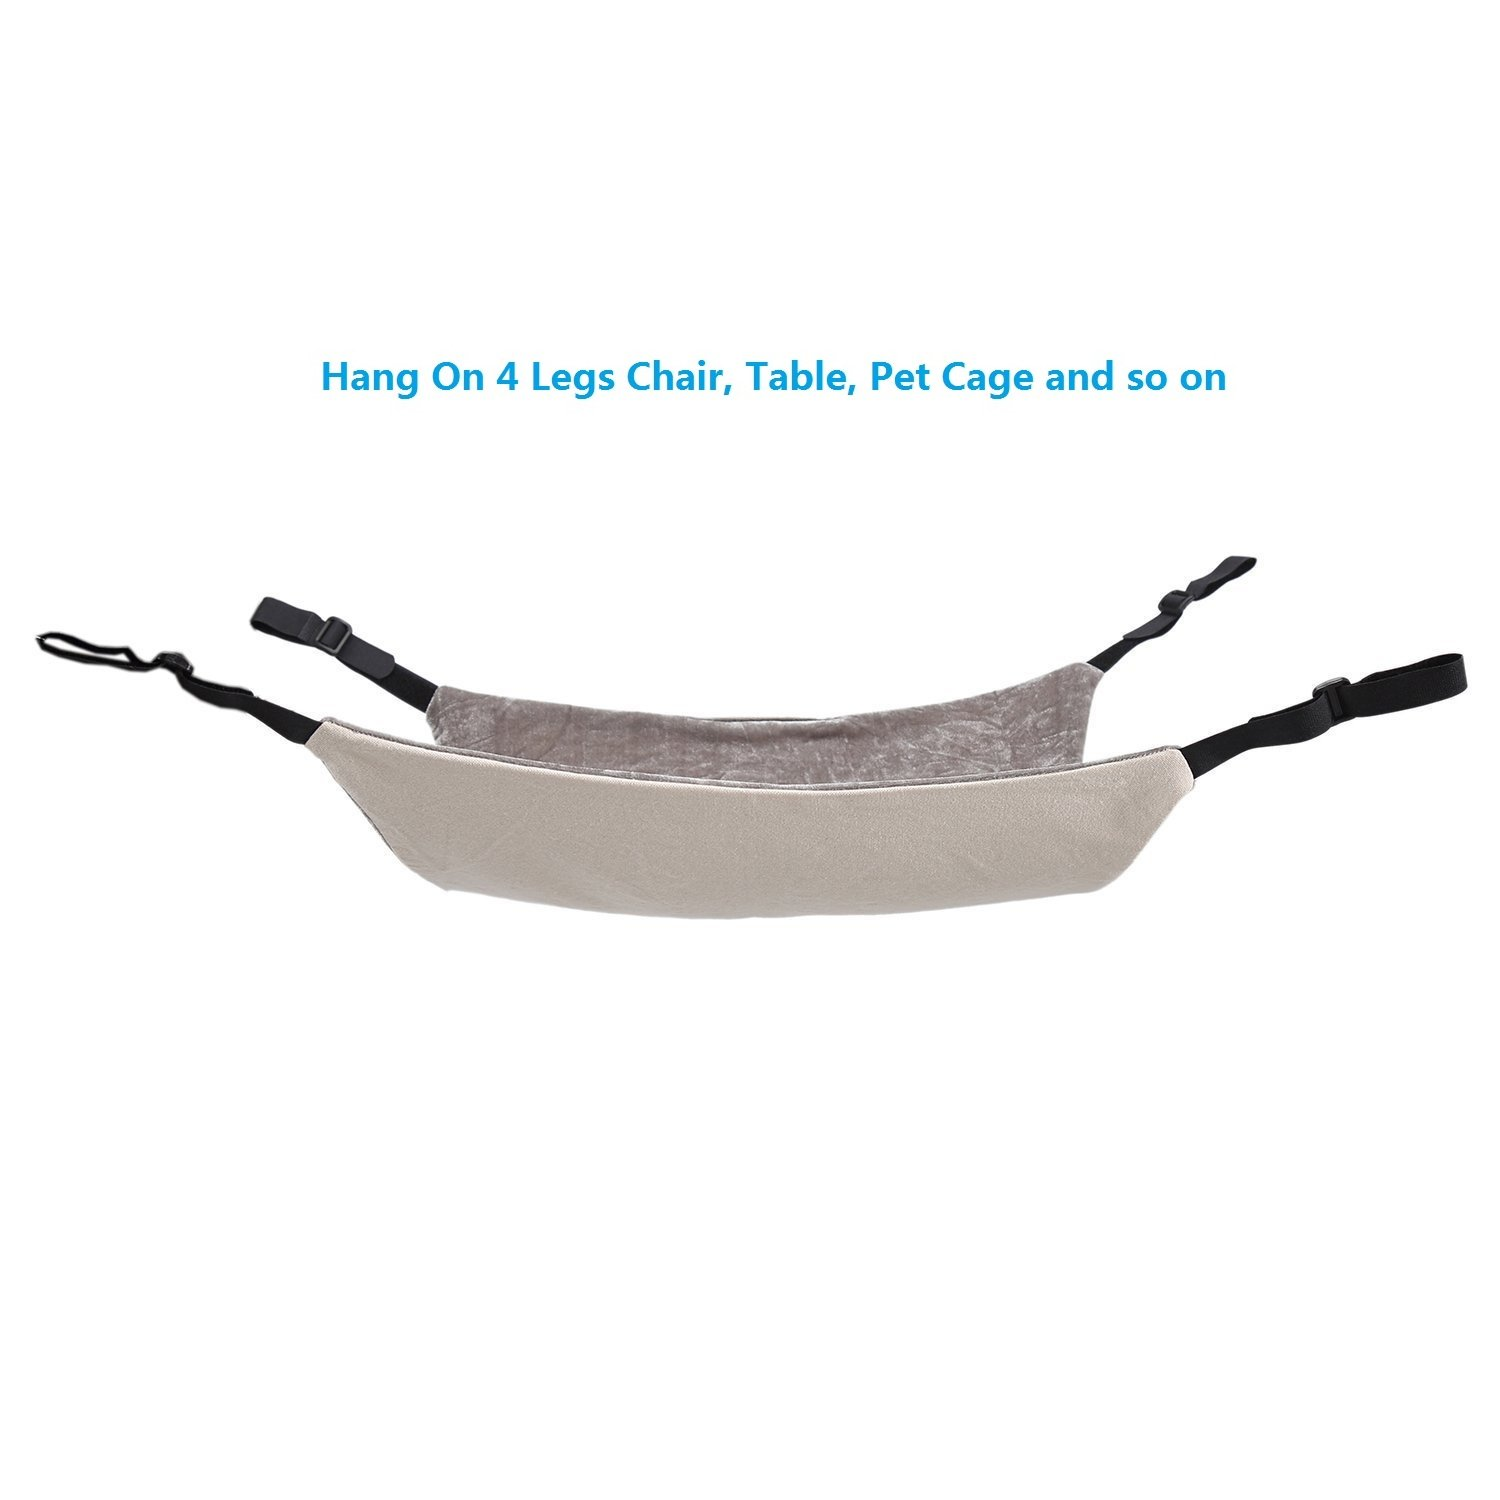 Amazon.com : Cat Hammock Bed - Soft Warm and Comfortable Pet Hammock Use with Chair for Kitten, Ferret, Puppy, or Small Pet (Khaki) : Pet Supplies